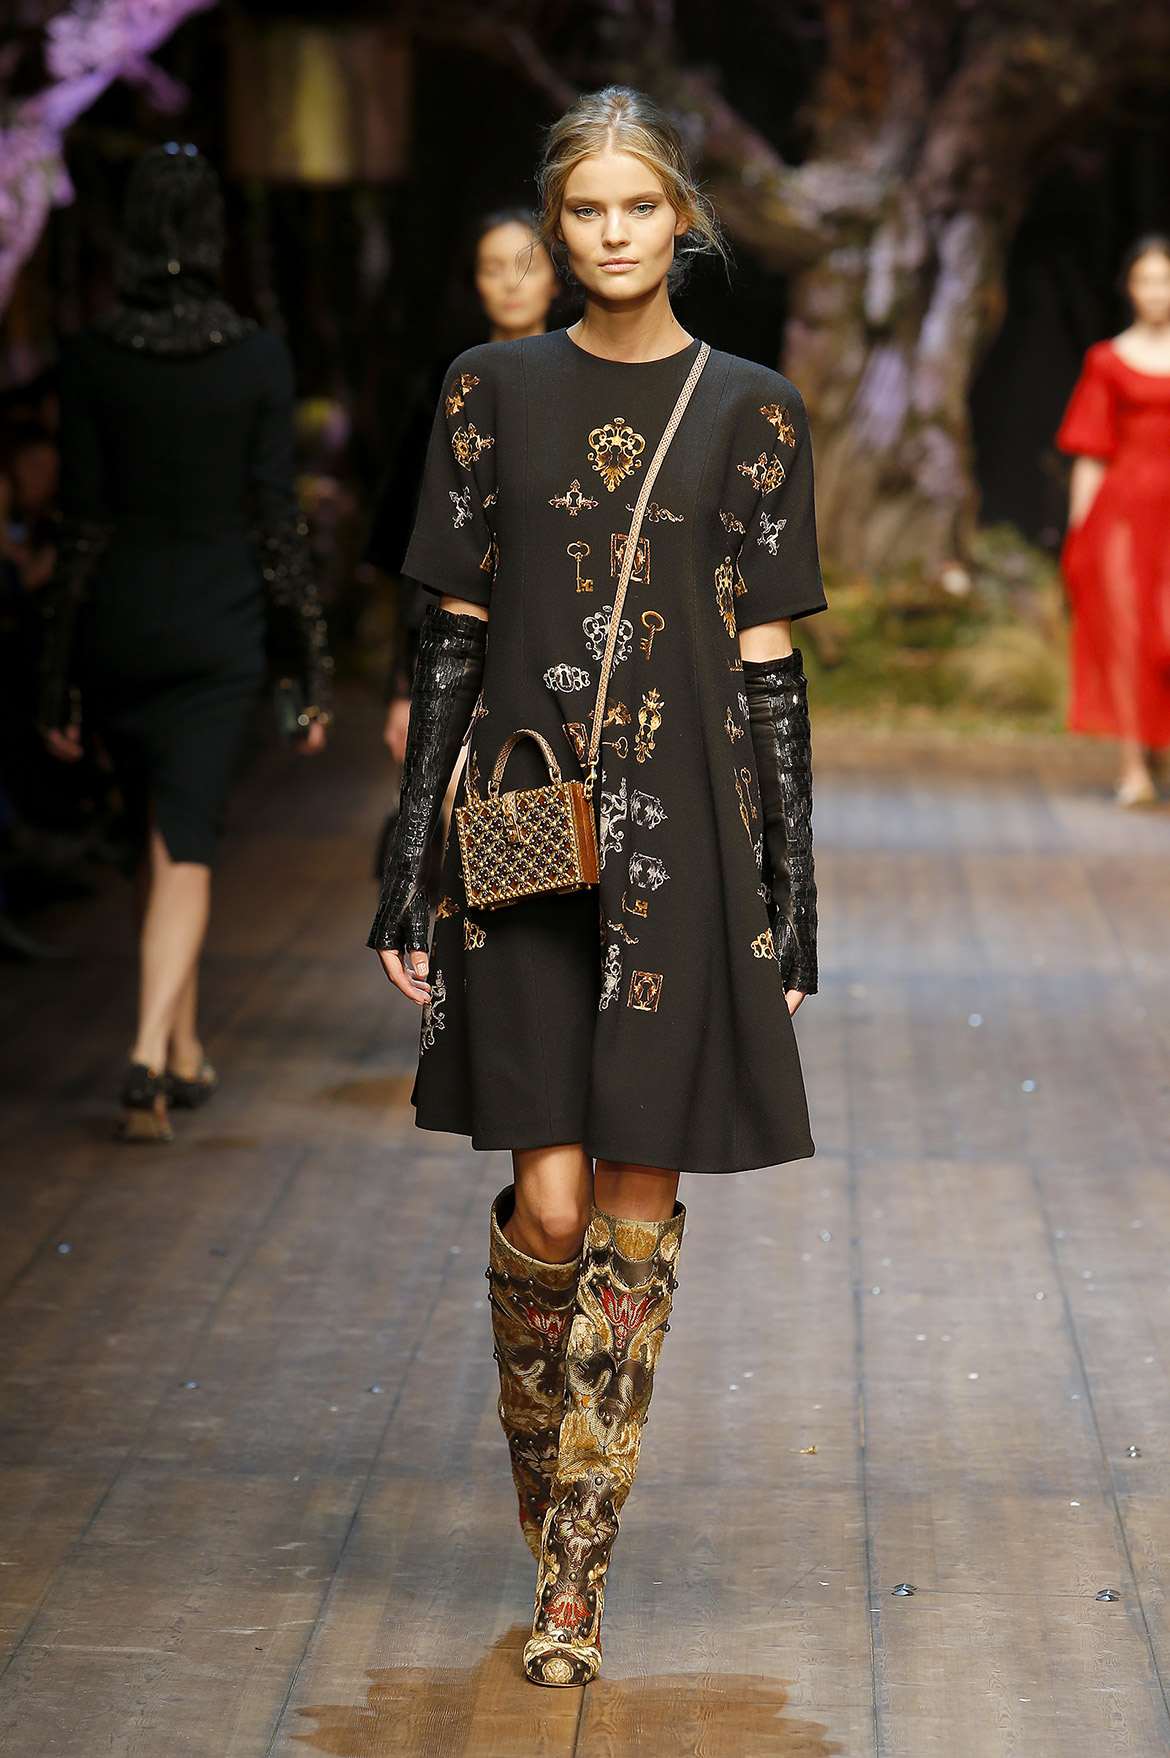 dolce-and-gabbana-fw-2014-2015-women-fashion-show-runway (5)